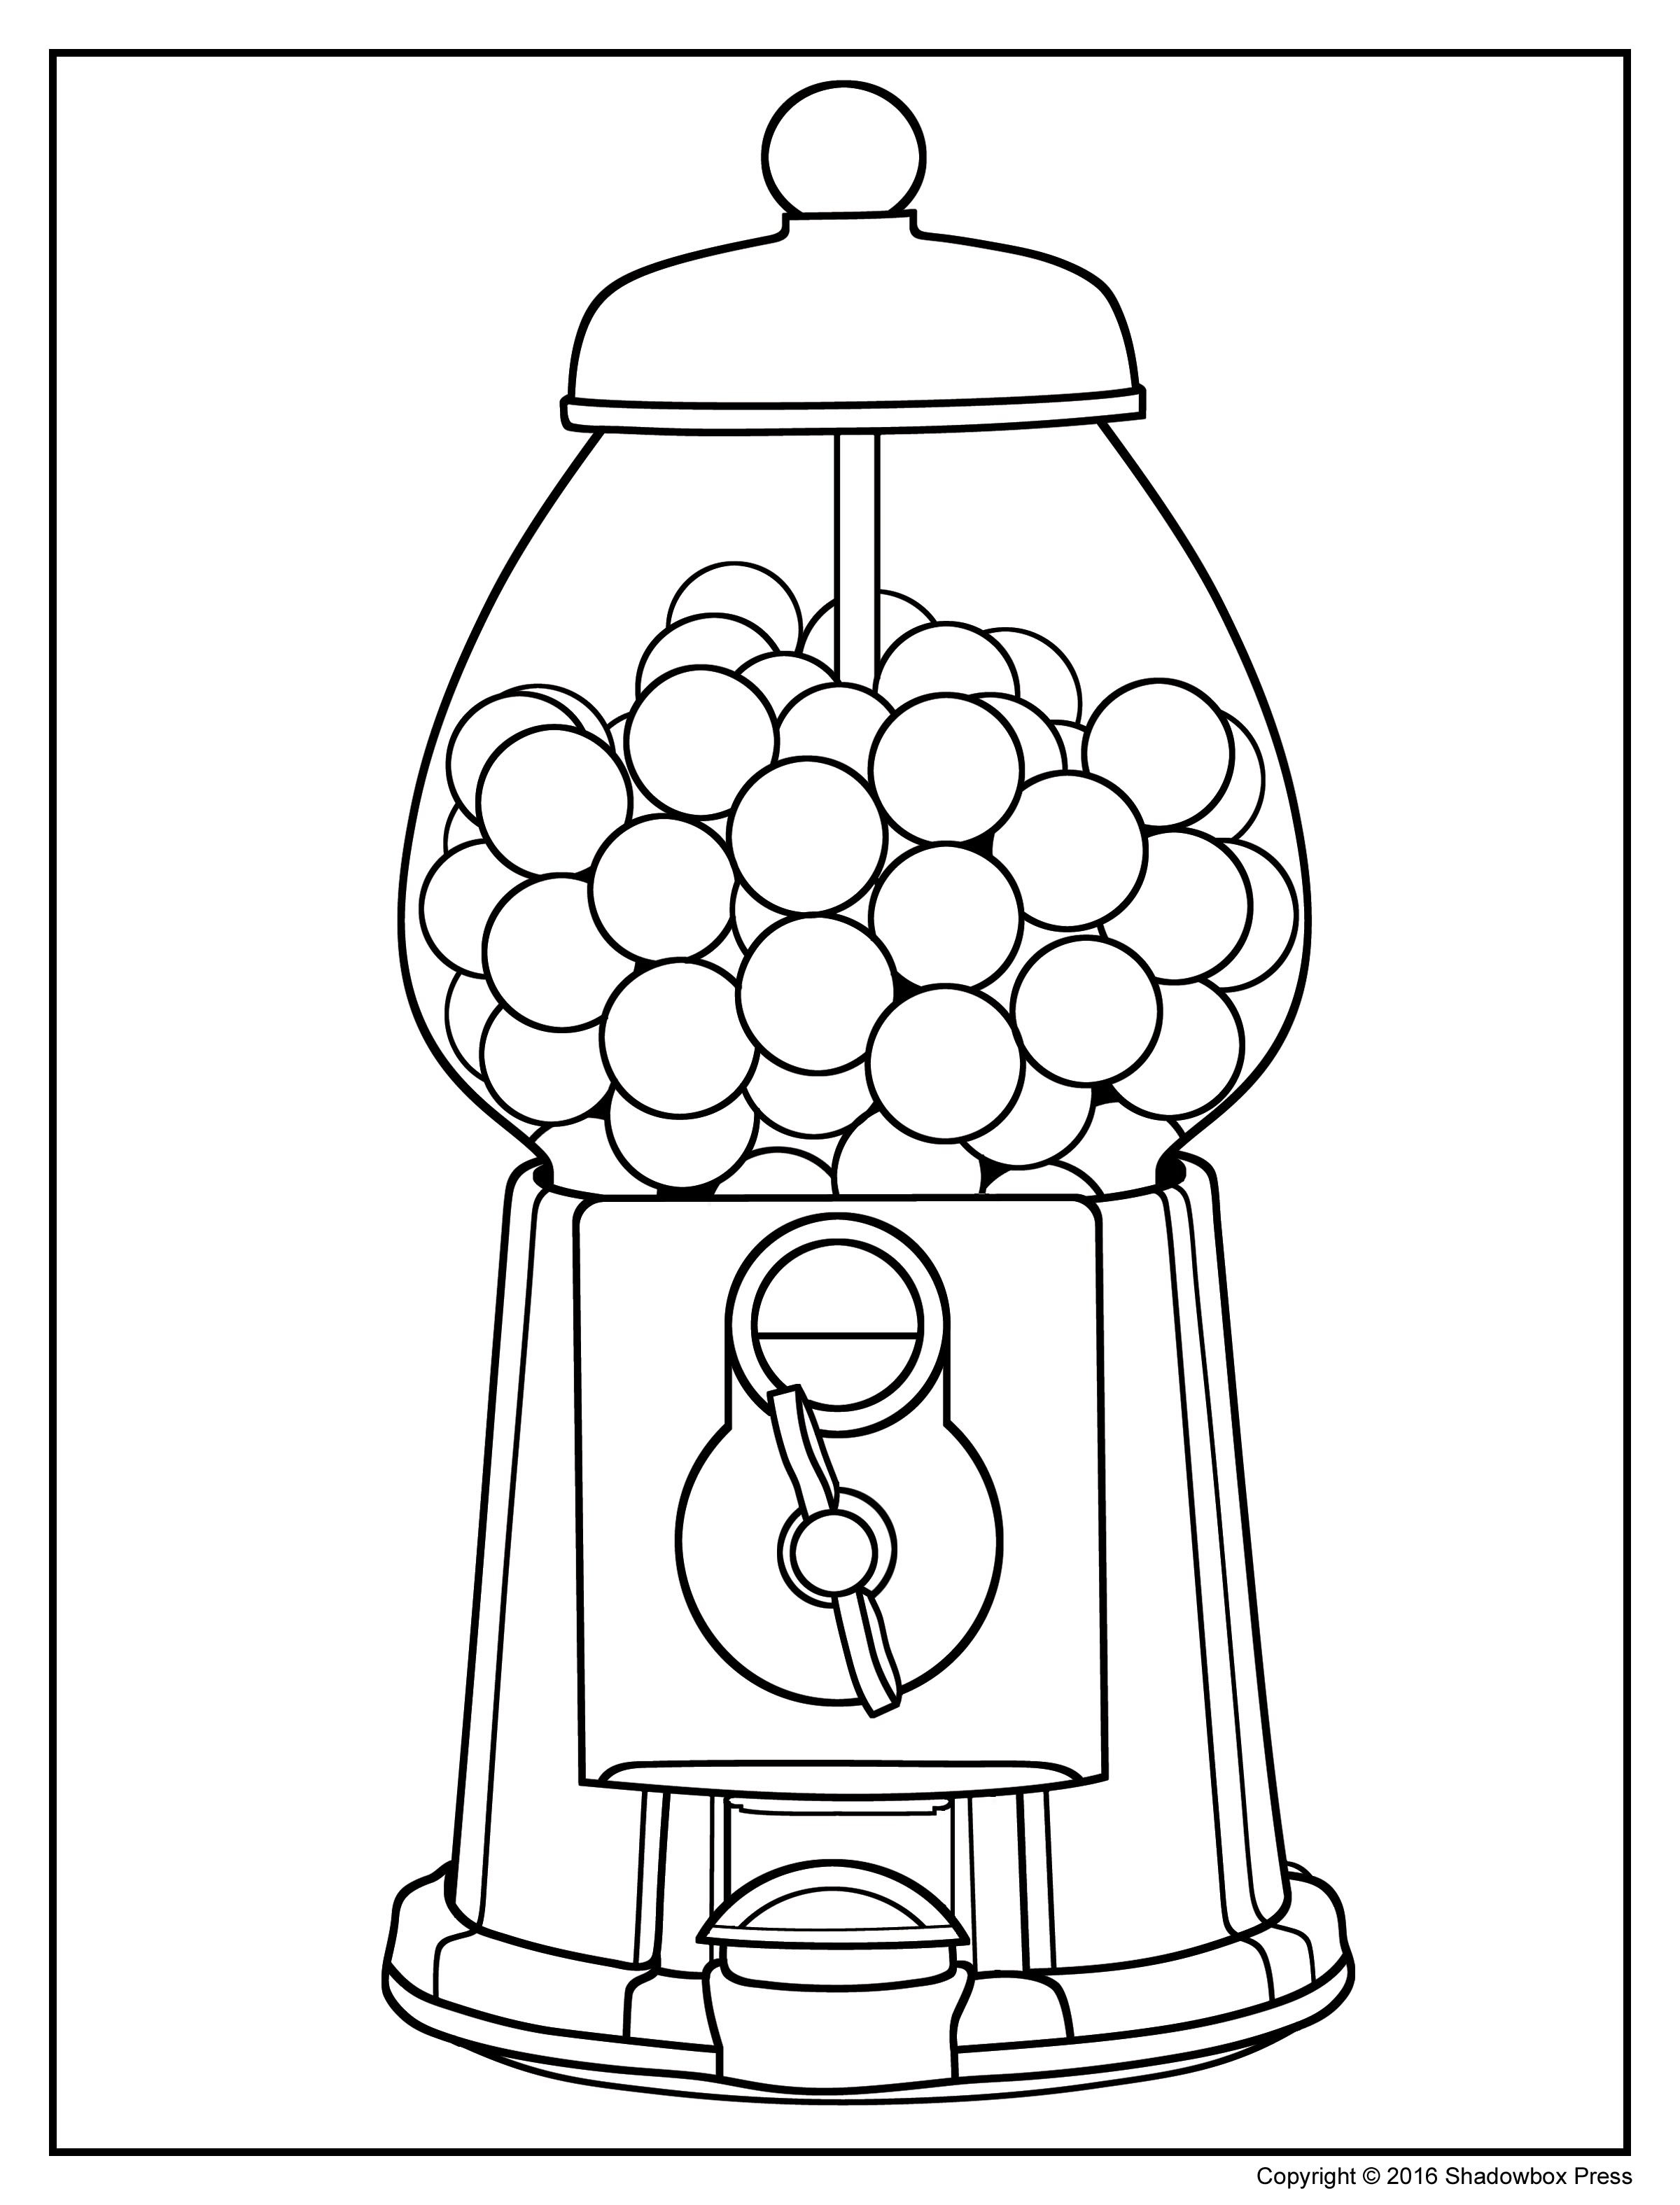 Coloring Pages for Dementia Patients - Free Downloadable Coloring Pages for Adults with Dementia Collection